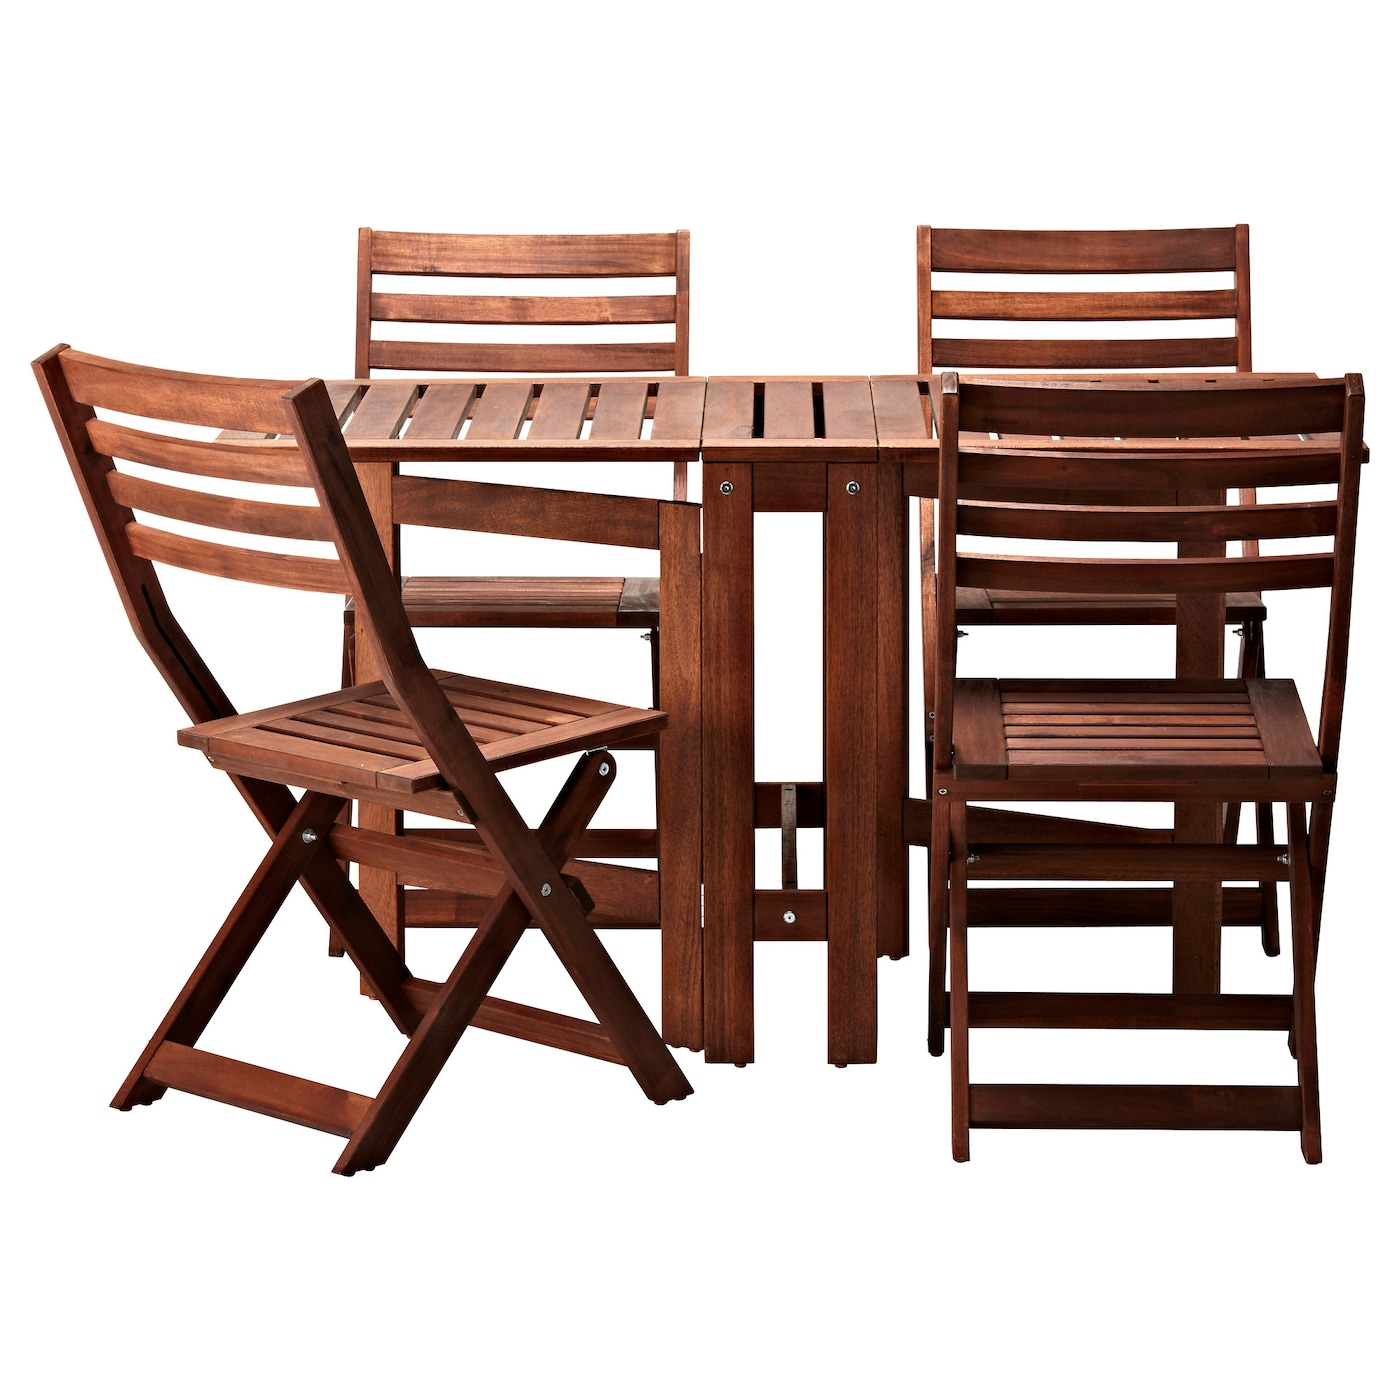 Interesting Garden Furniture Chairs Outdoor For Decor